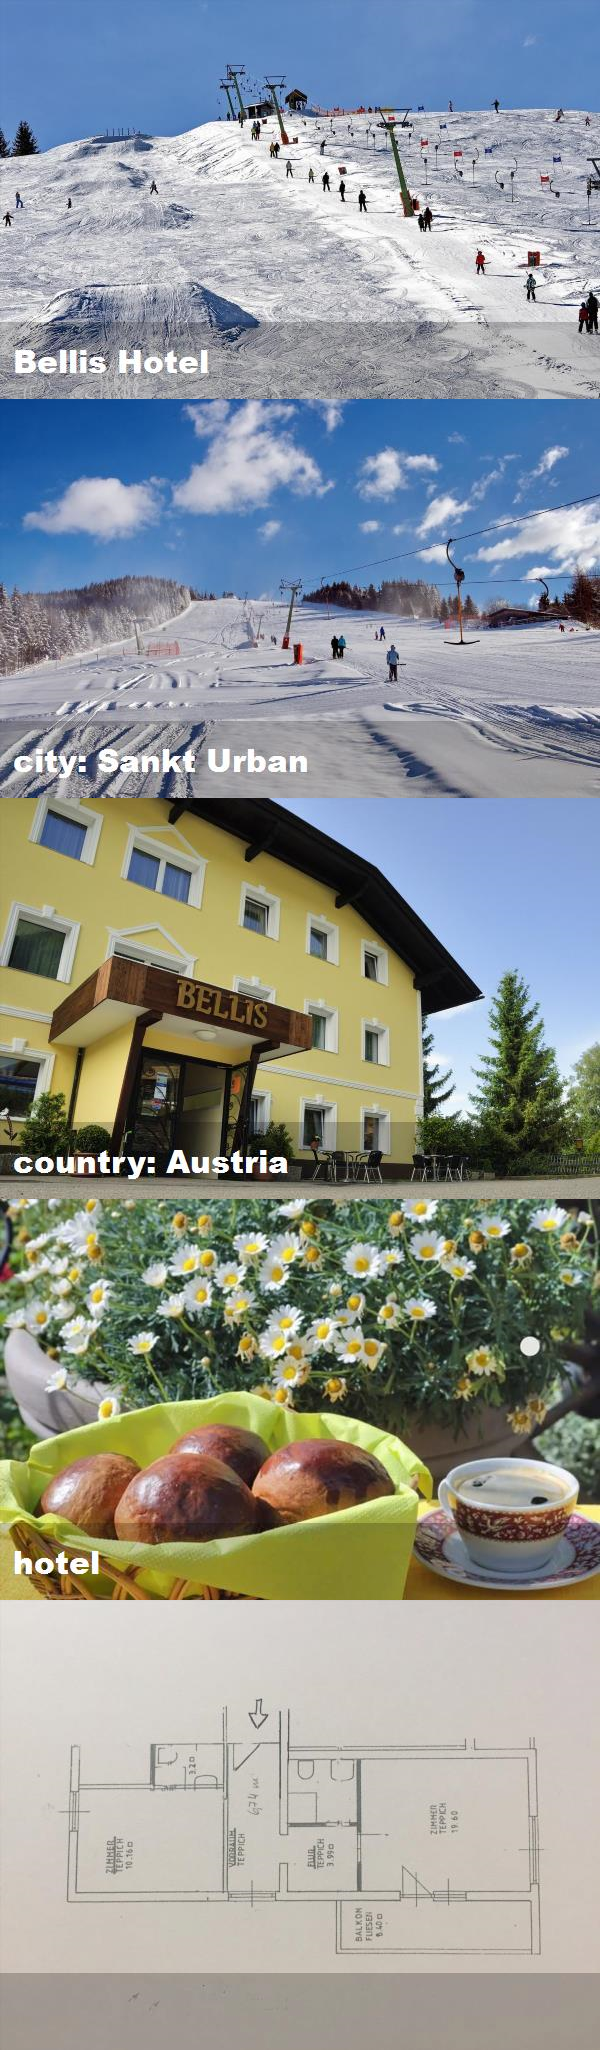 Bellis Hotel, City: Sankt Urban, Country: Austria, Hotel